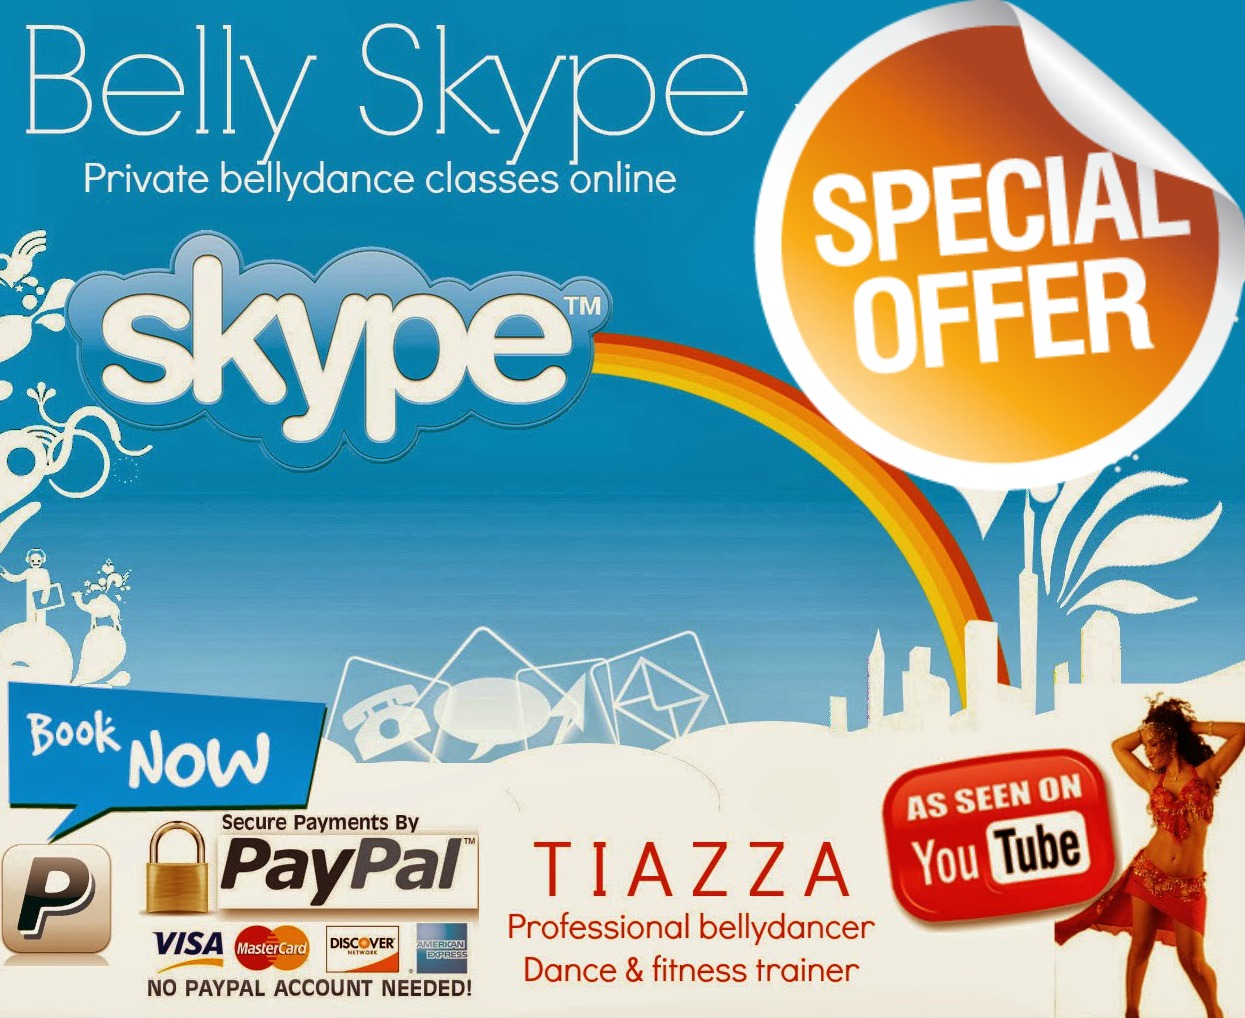 PRIVATE SKYPE CLASSES